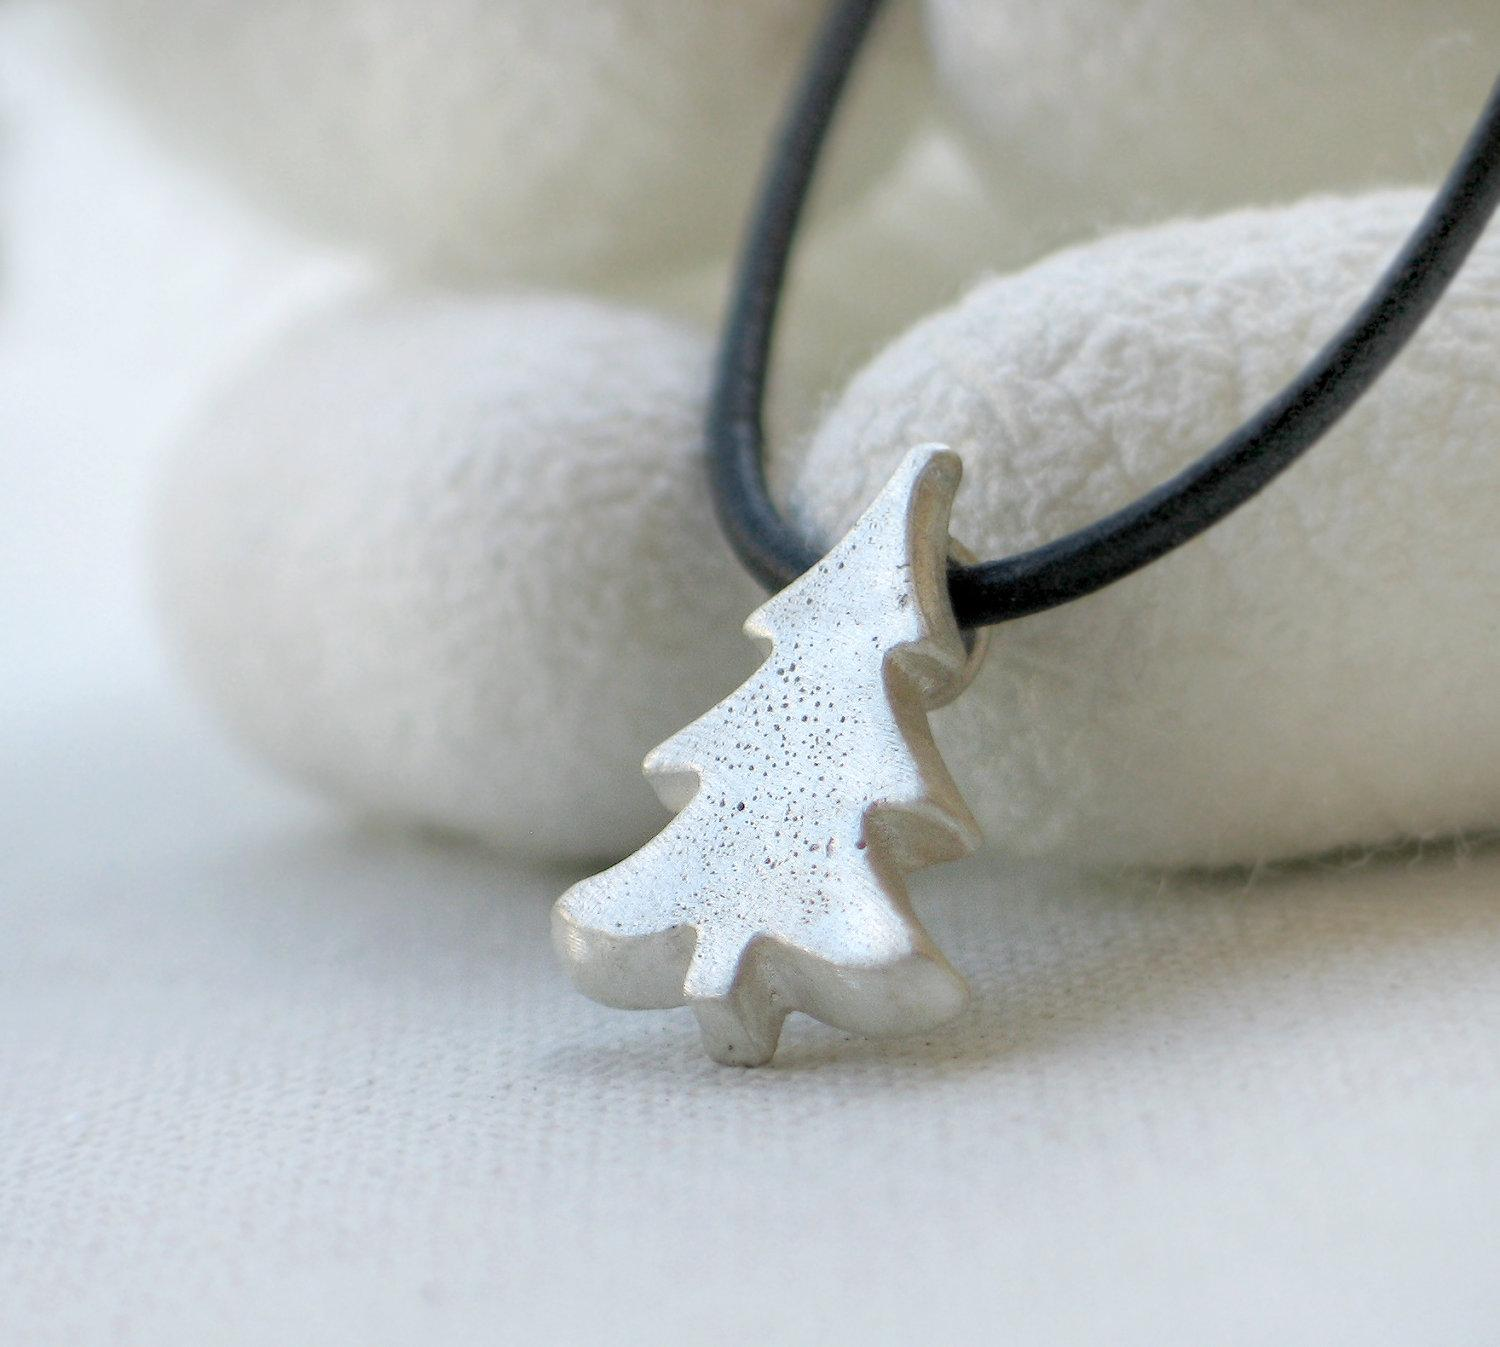 Christmas tree sterling silver pendant by mariastudio on Etsy